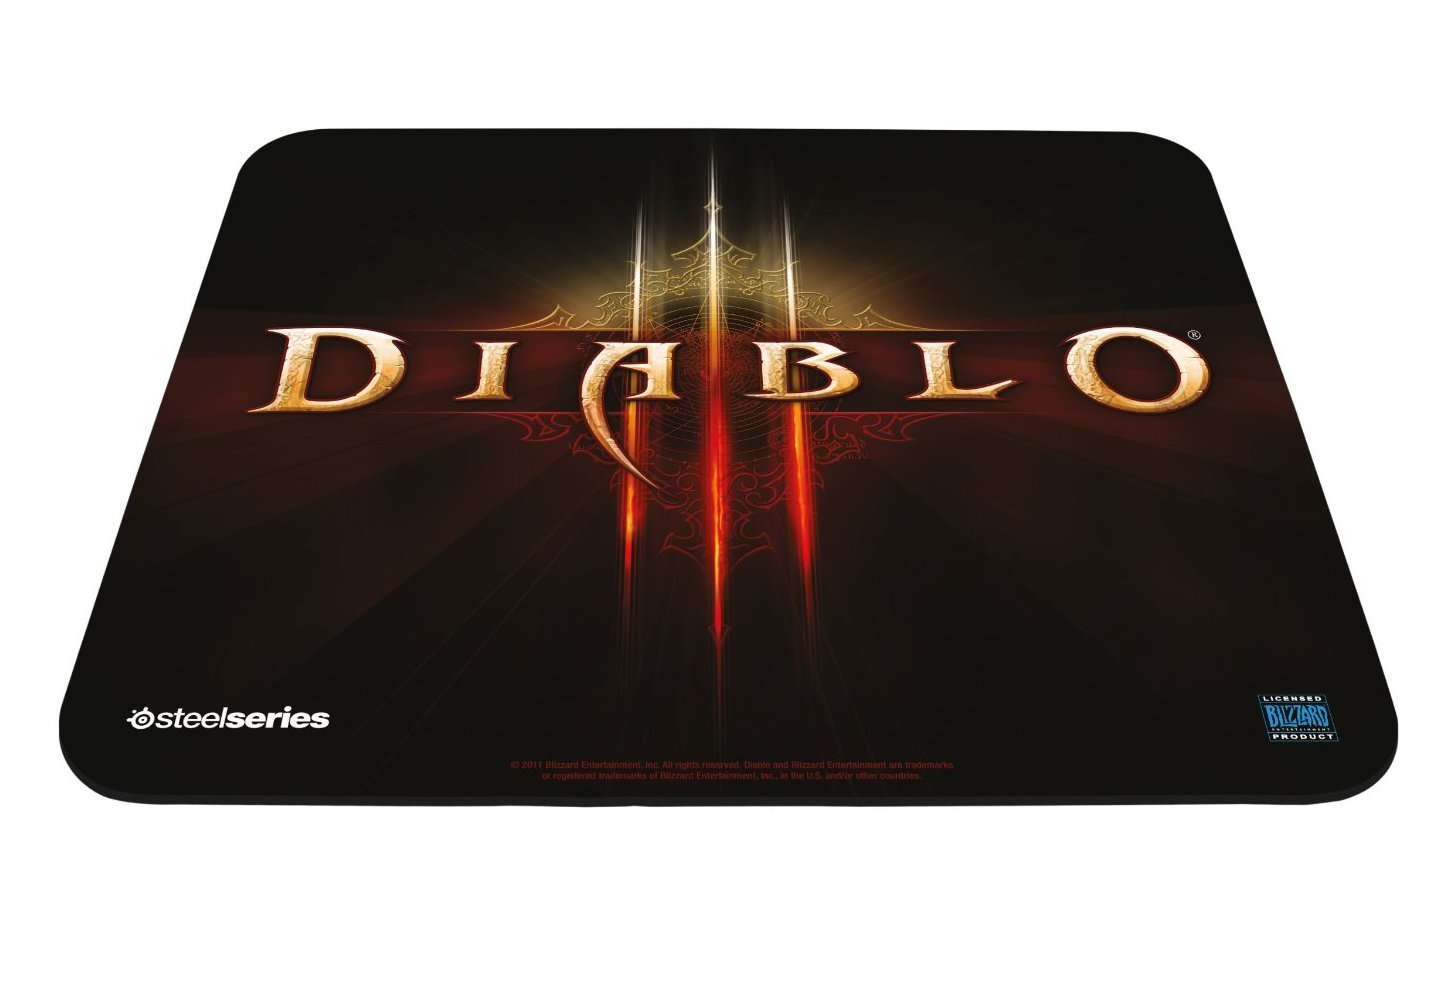 Tapis de souris steelseries diablo 3 - Steelseries tapis de souris ...